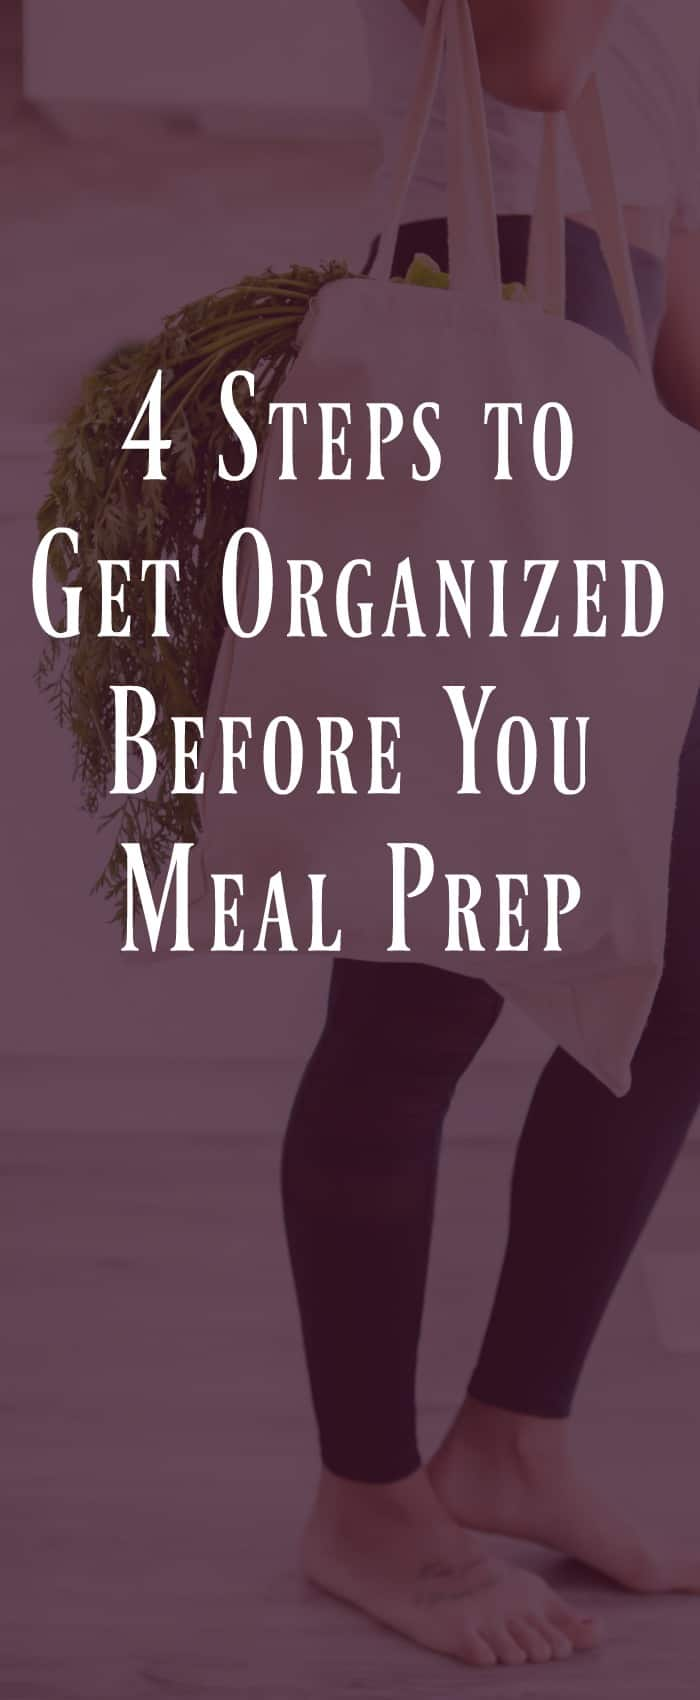 4 Steps to Get Organize Before Meal Prep